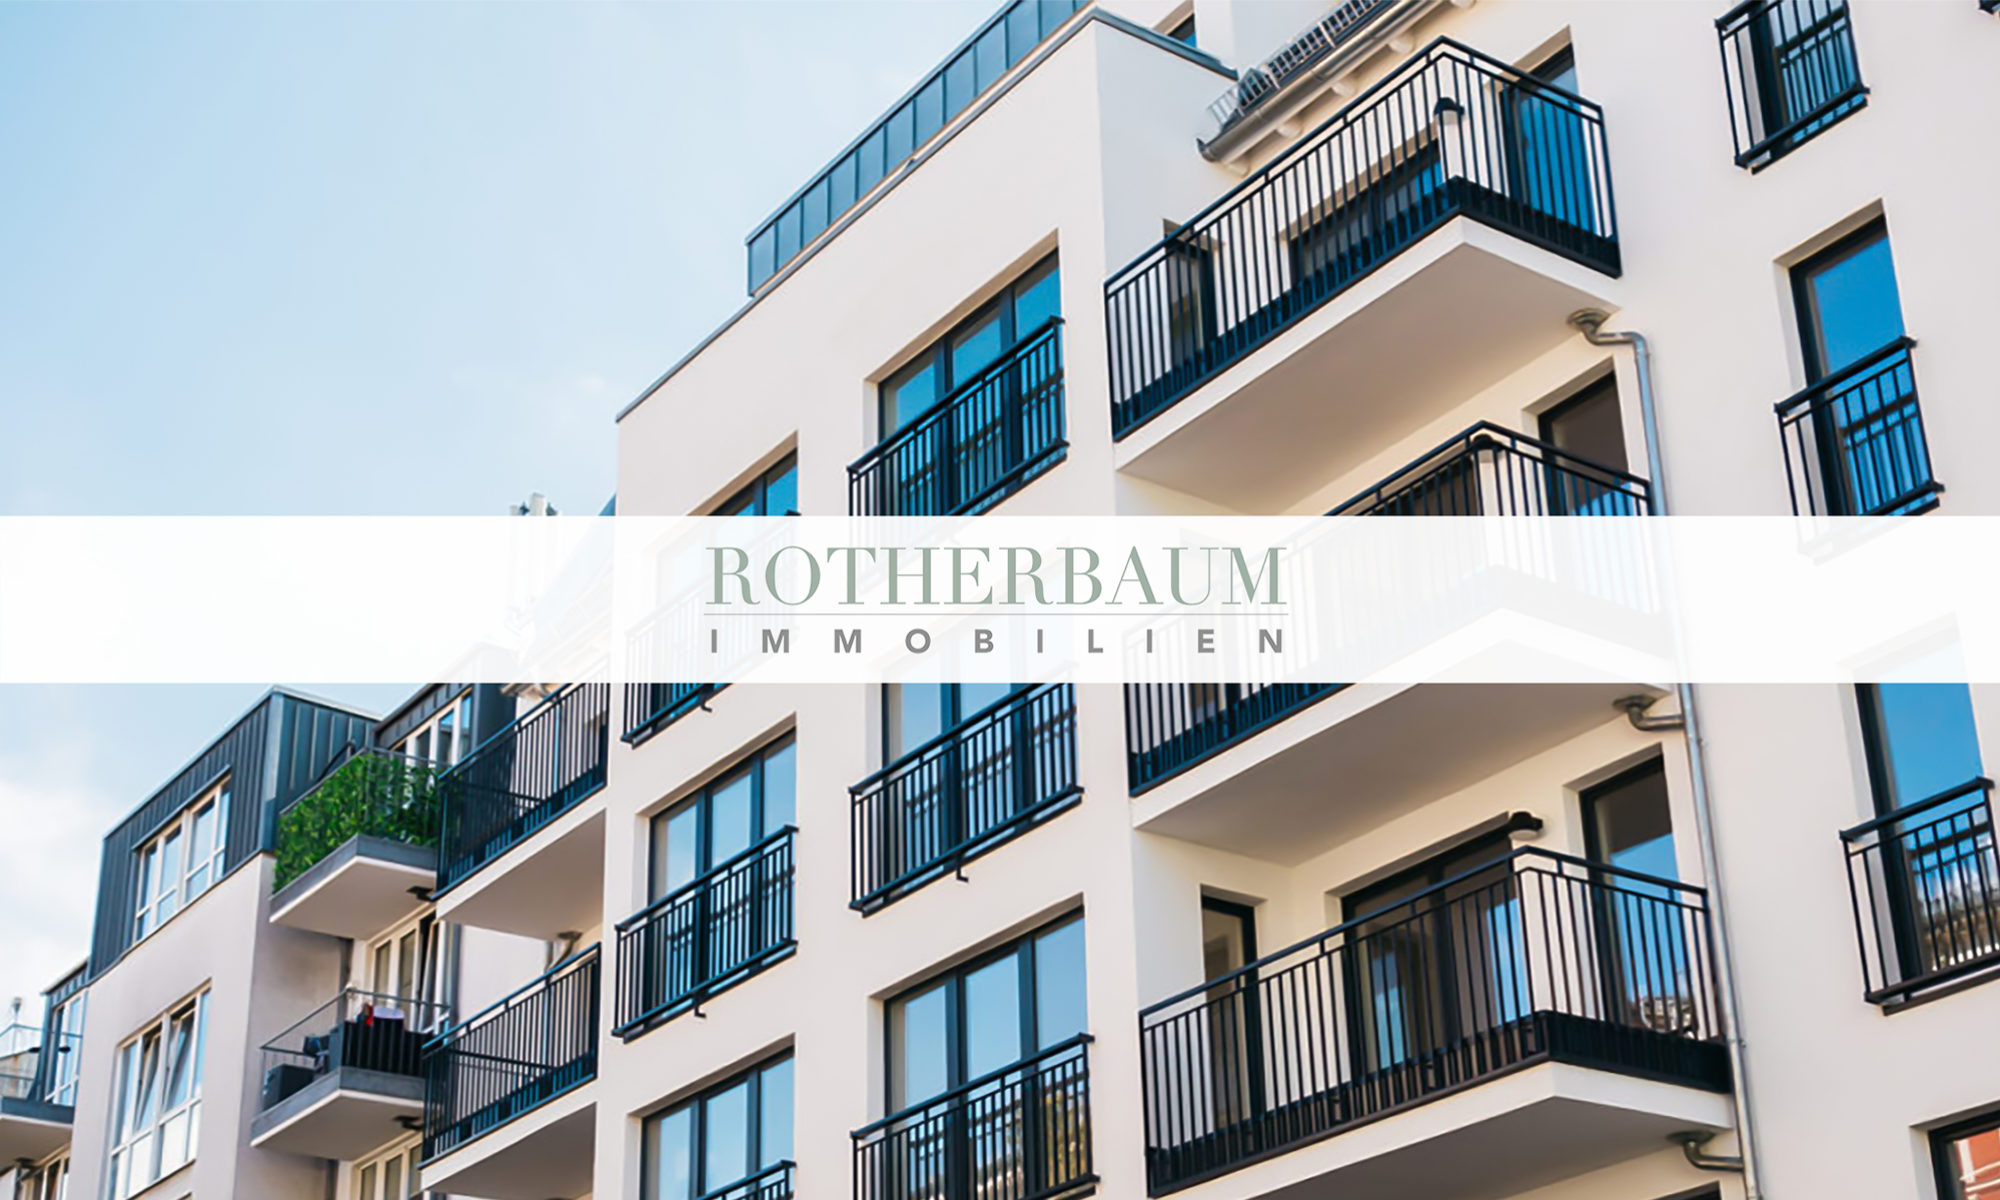 Rotherbaum Immobilien